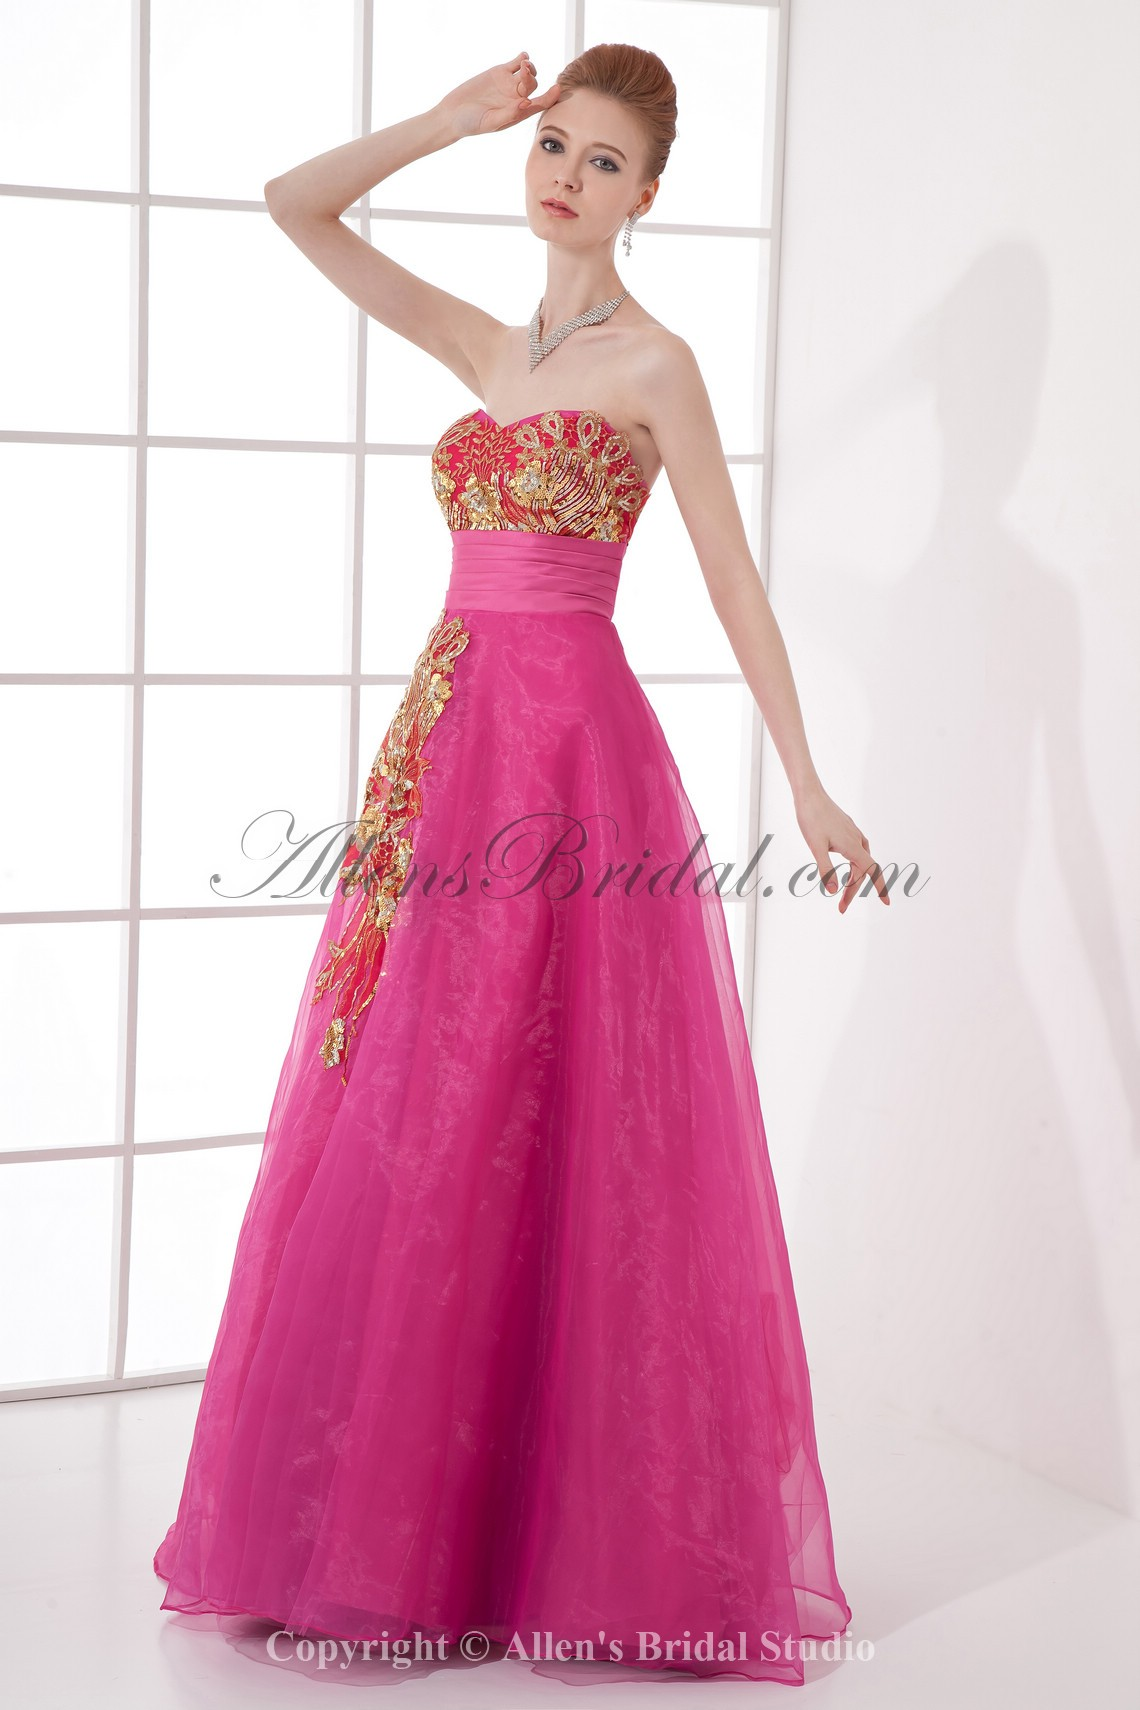 /105-836/organza-sweetheart-neckline-a-line-floor-length-embroidered-prom-dress.jpg